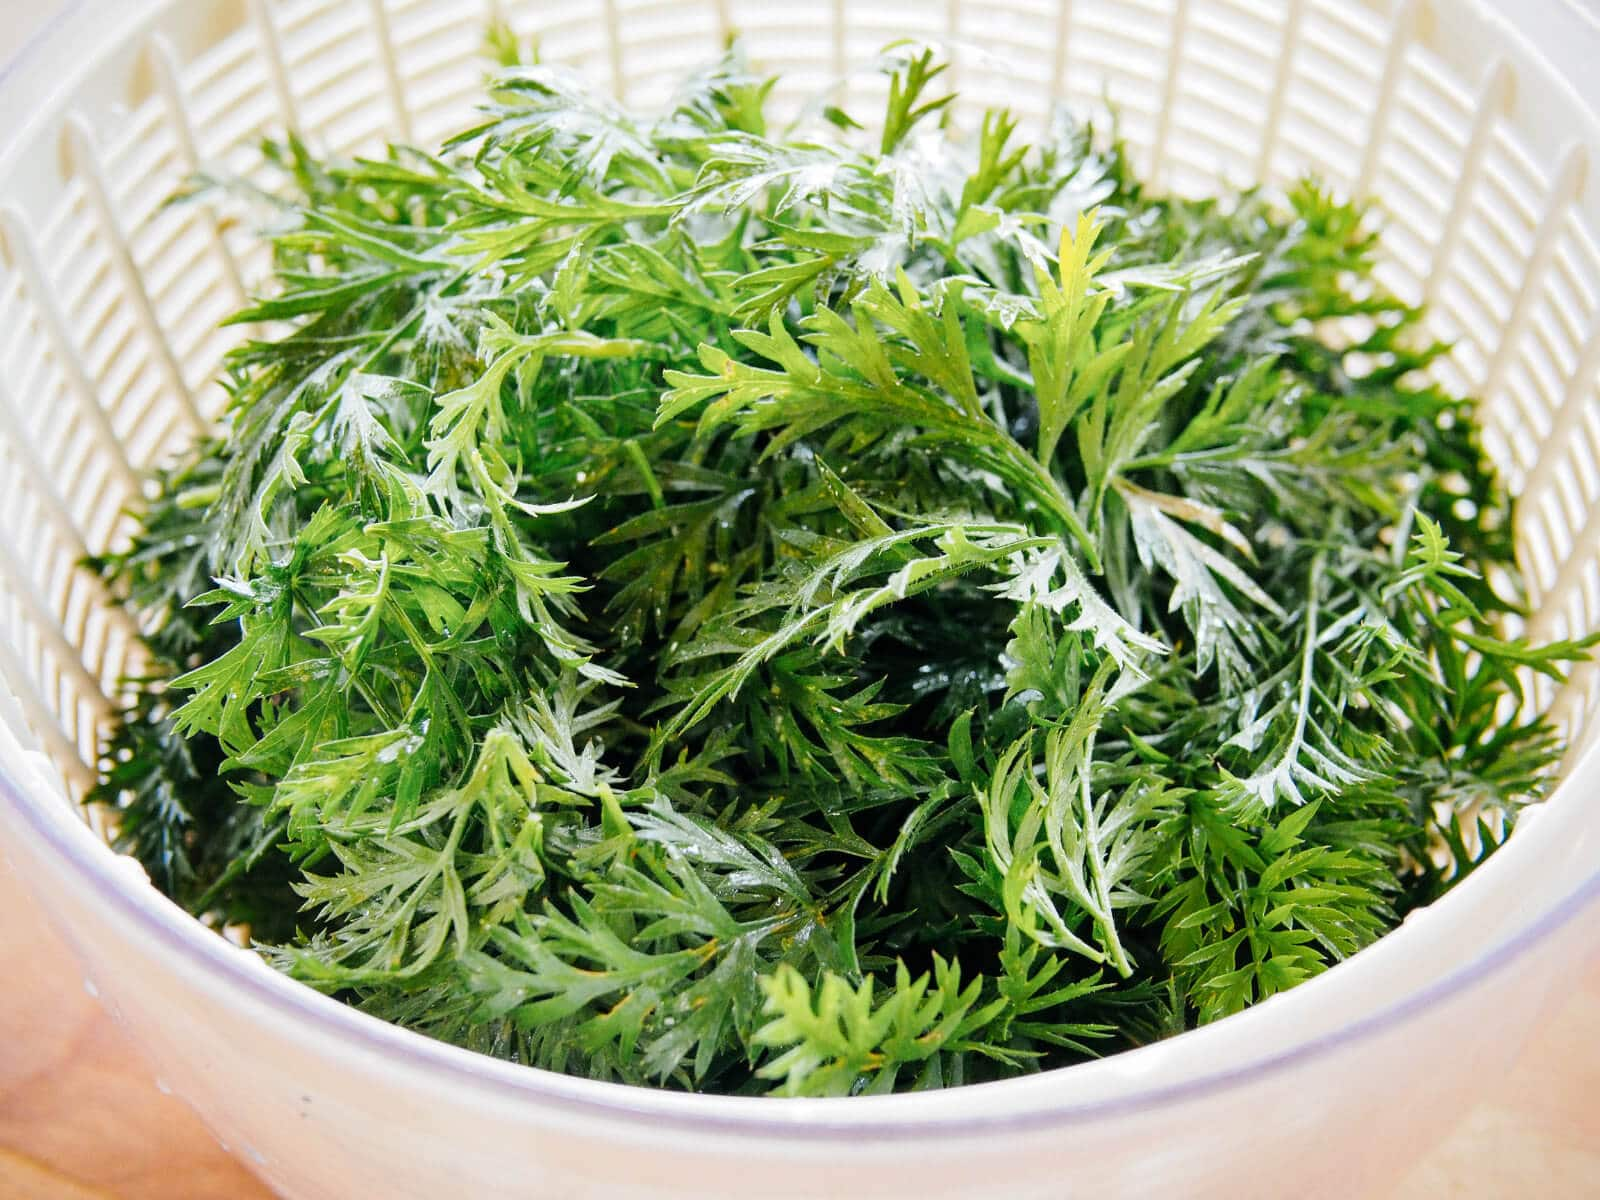 Use carrot greens in your recipes